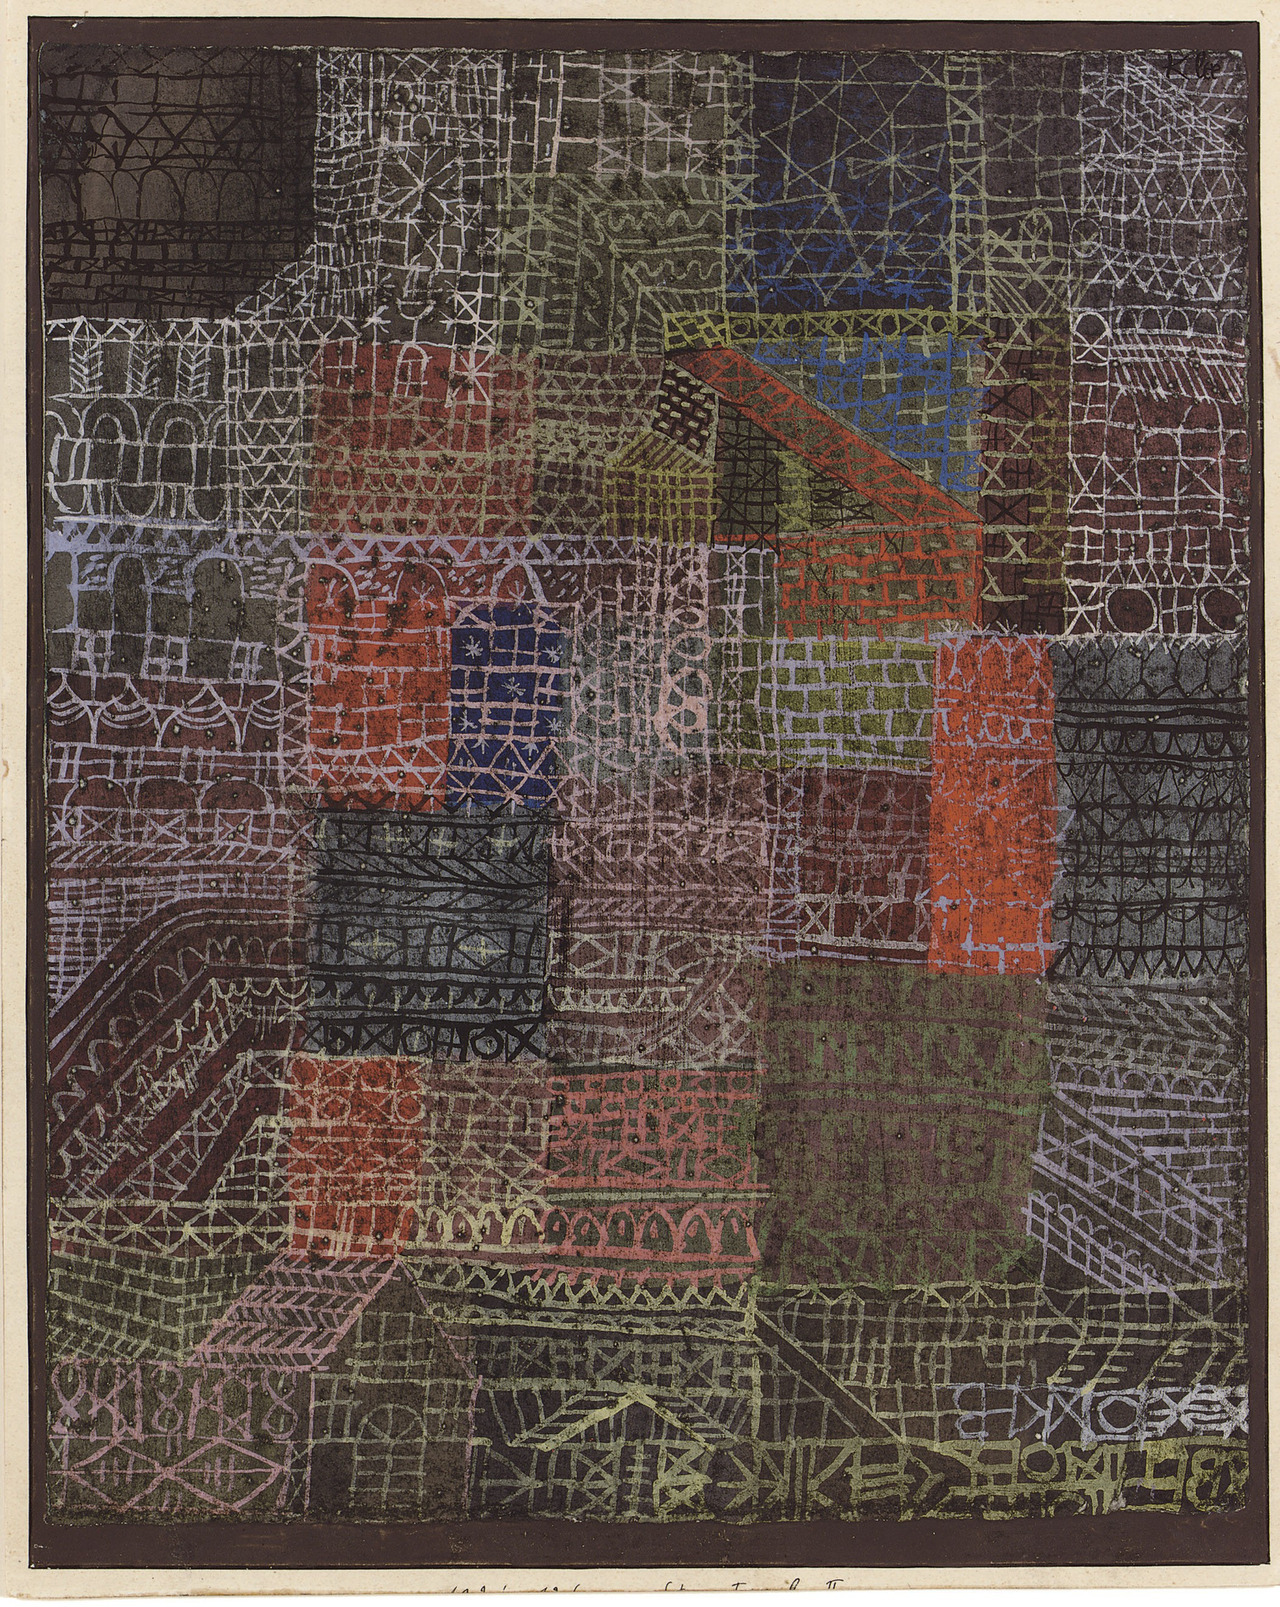 Paul Klee - 'Structual II' '1924